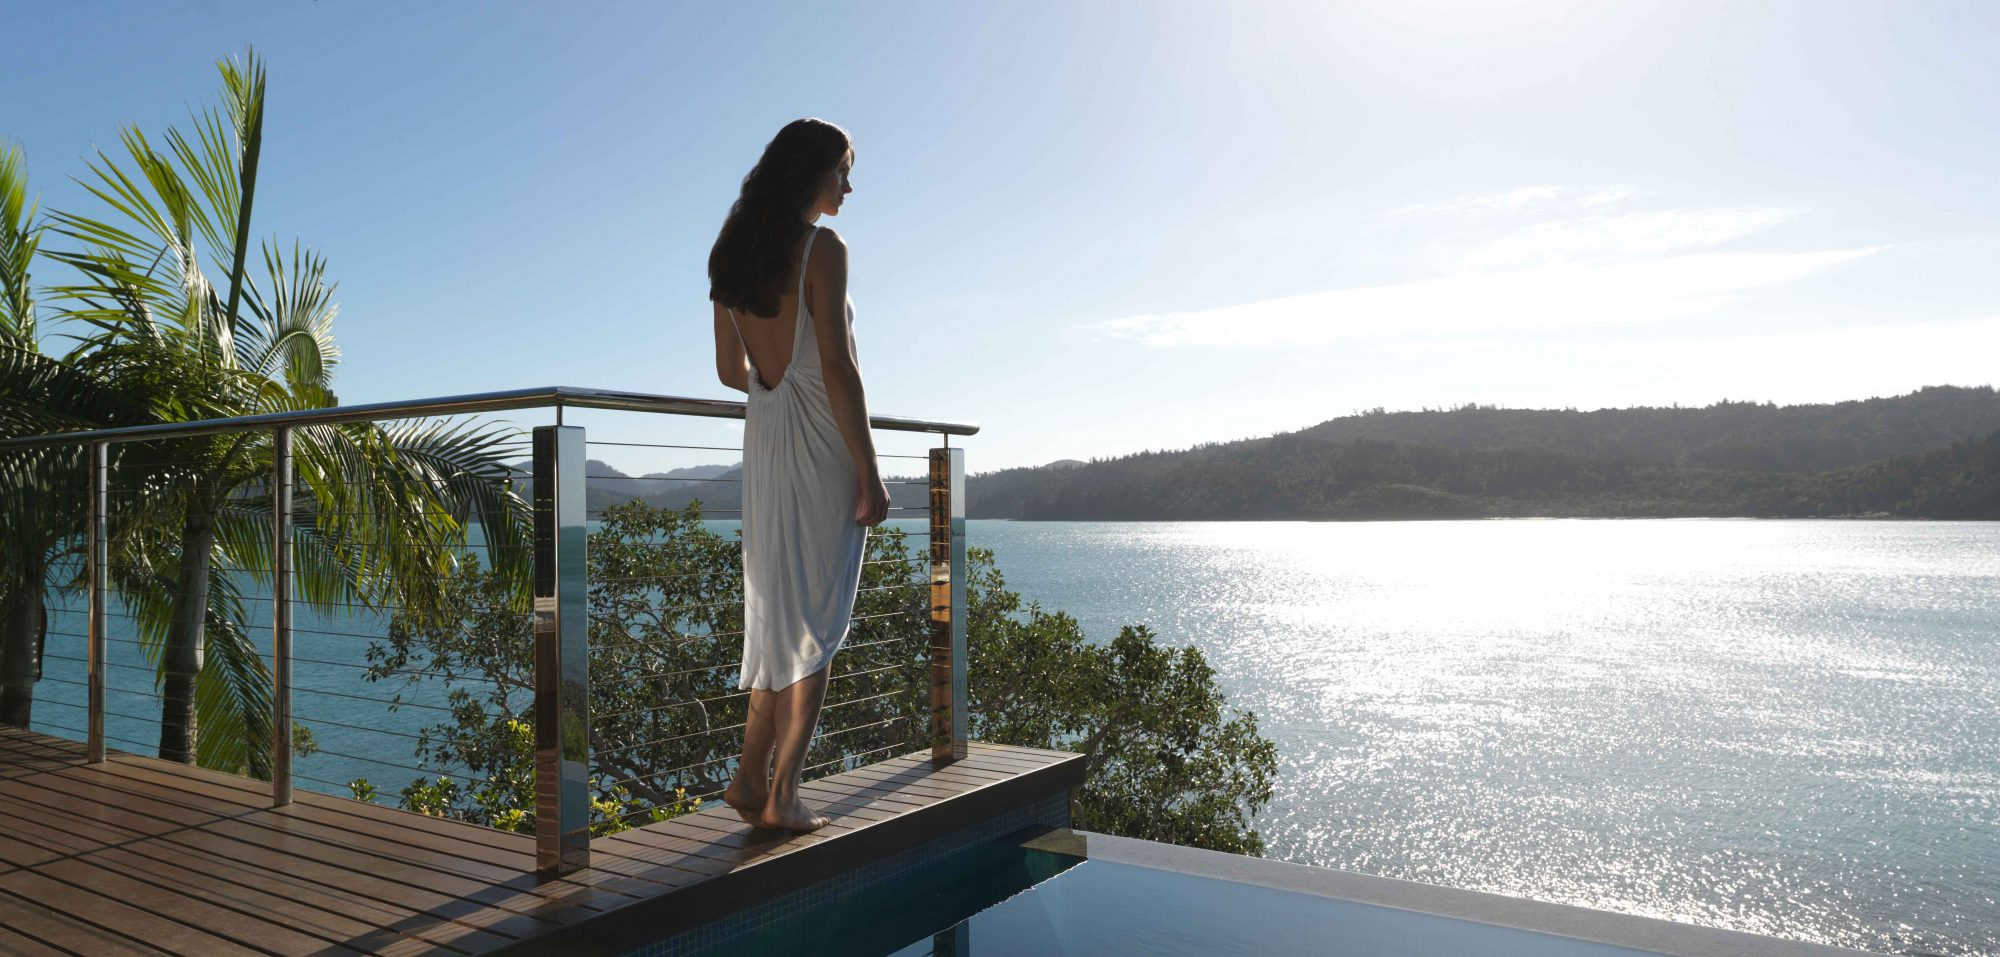 qualia_Great-Barrier-Reef_Woman-Standing-Plunge-Pool-